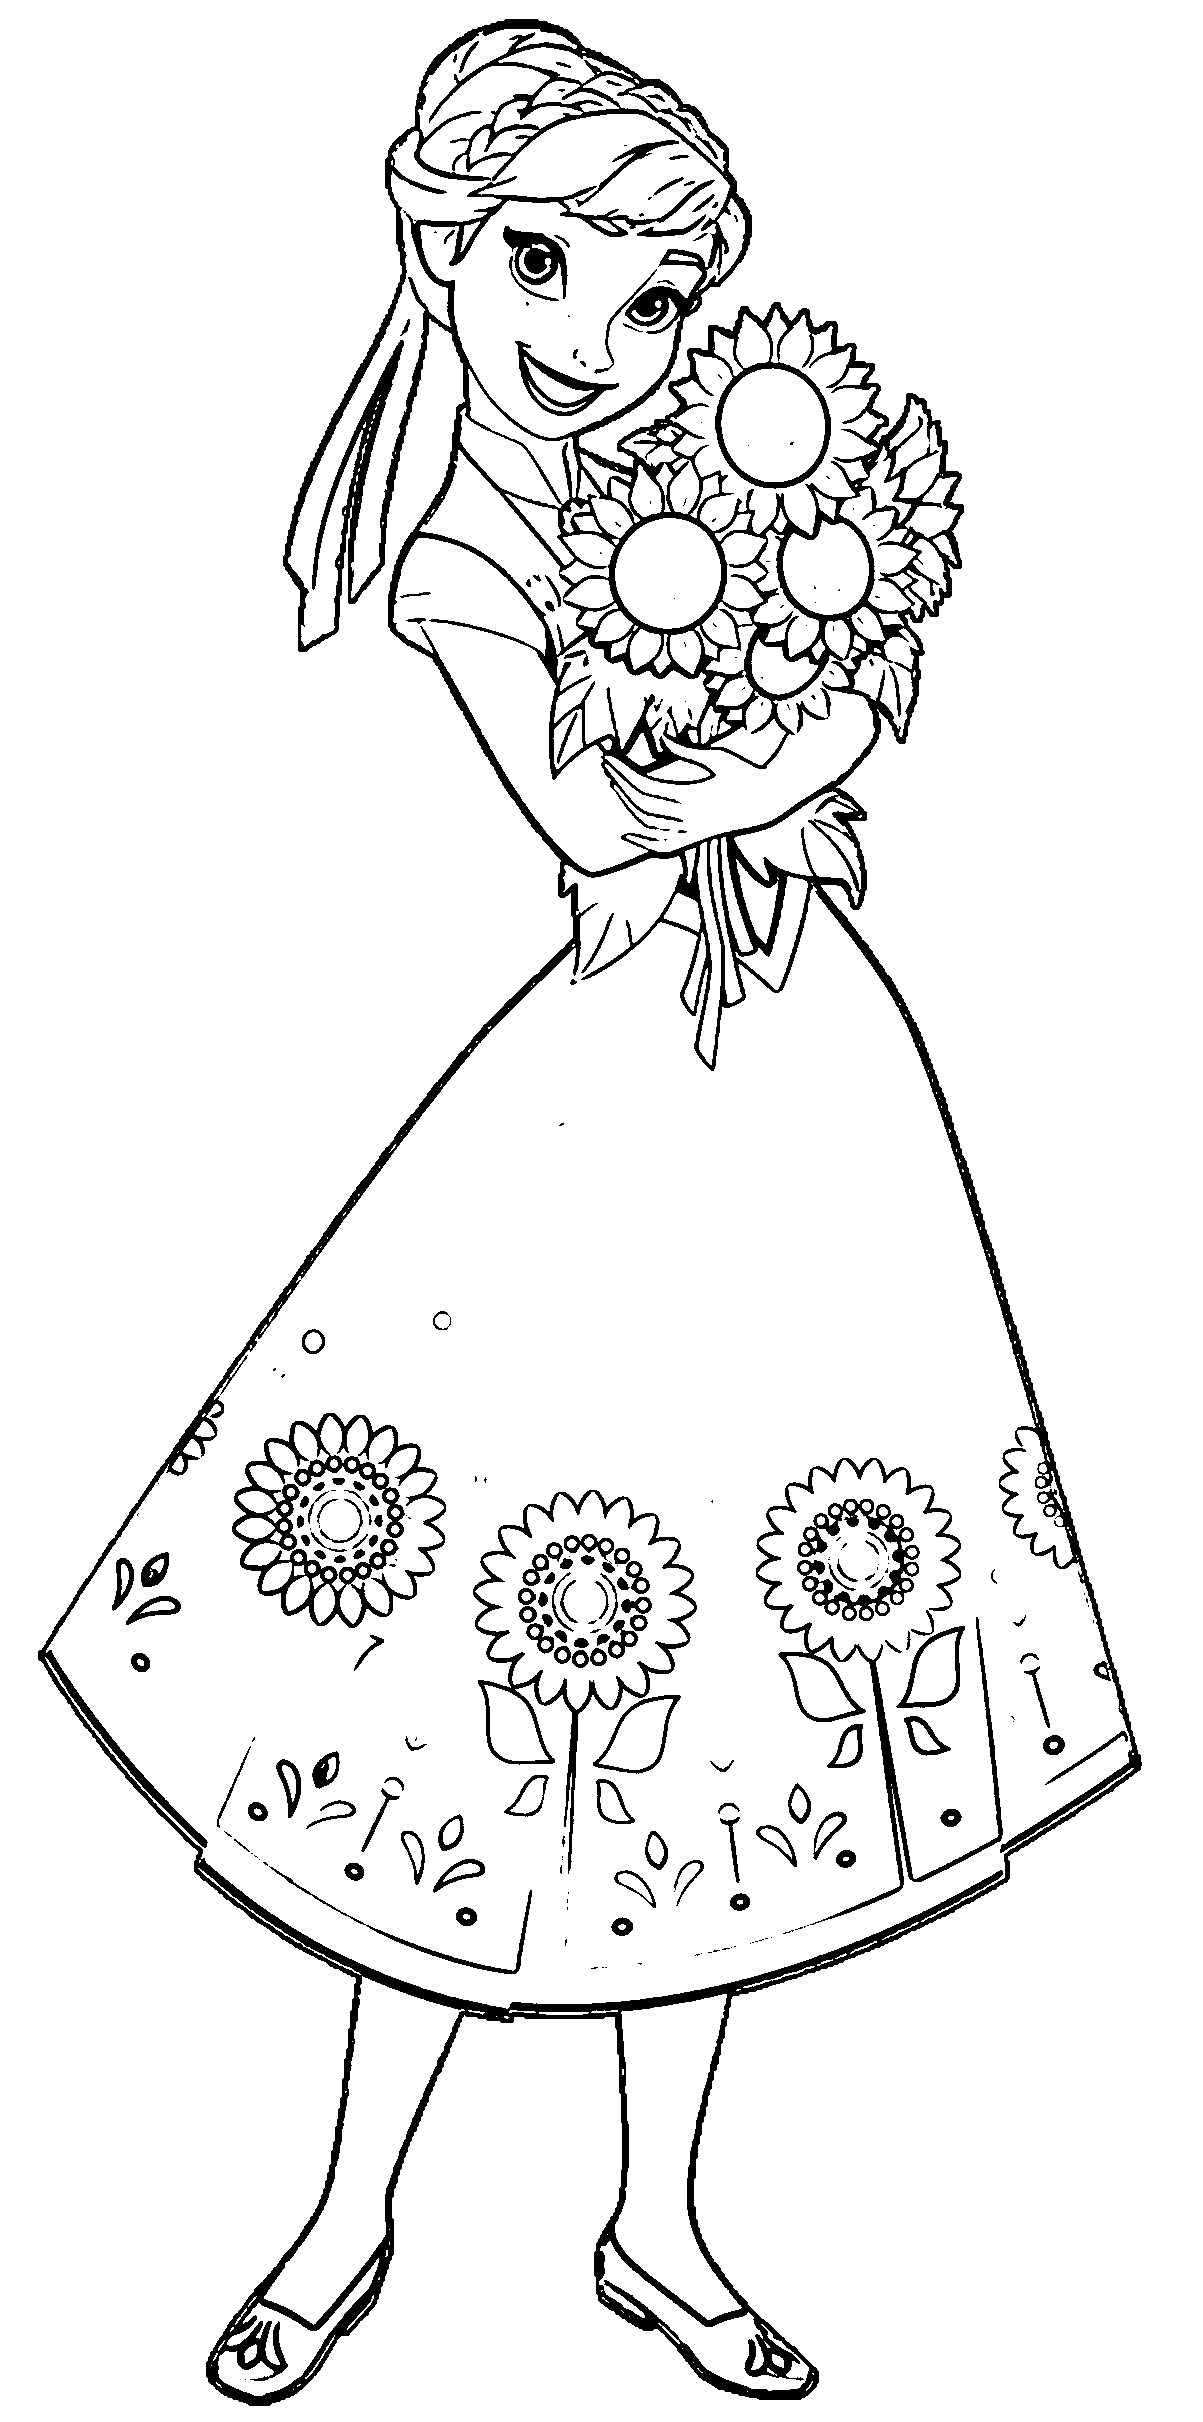 frozen fever coloring pages - coloring pages frozen fever